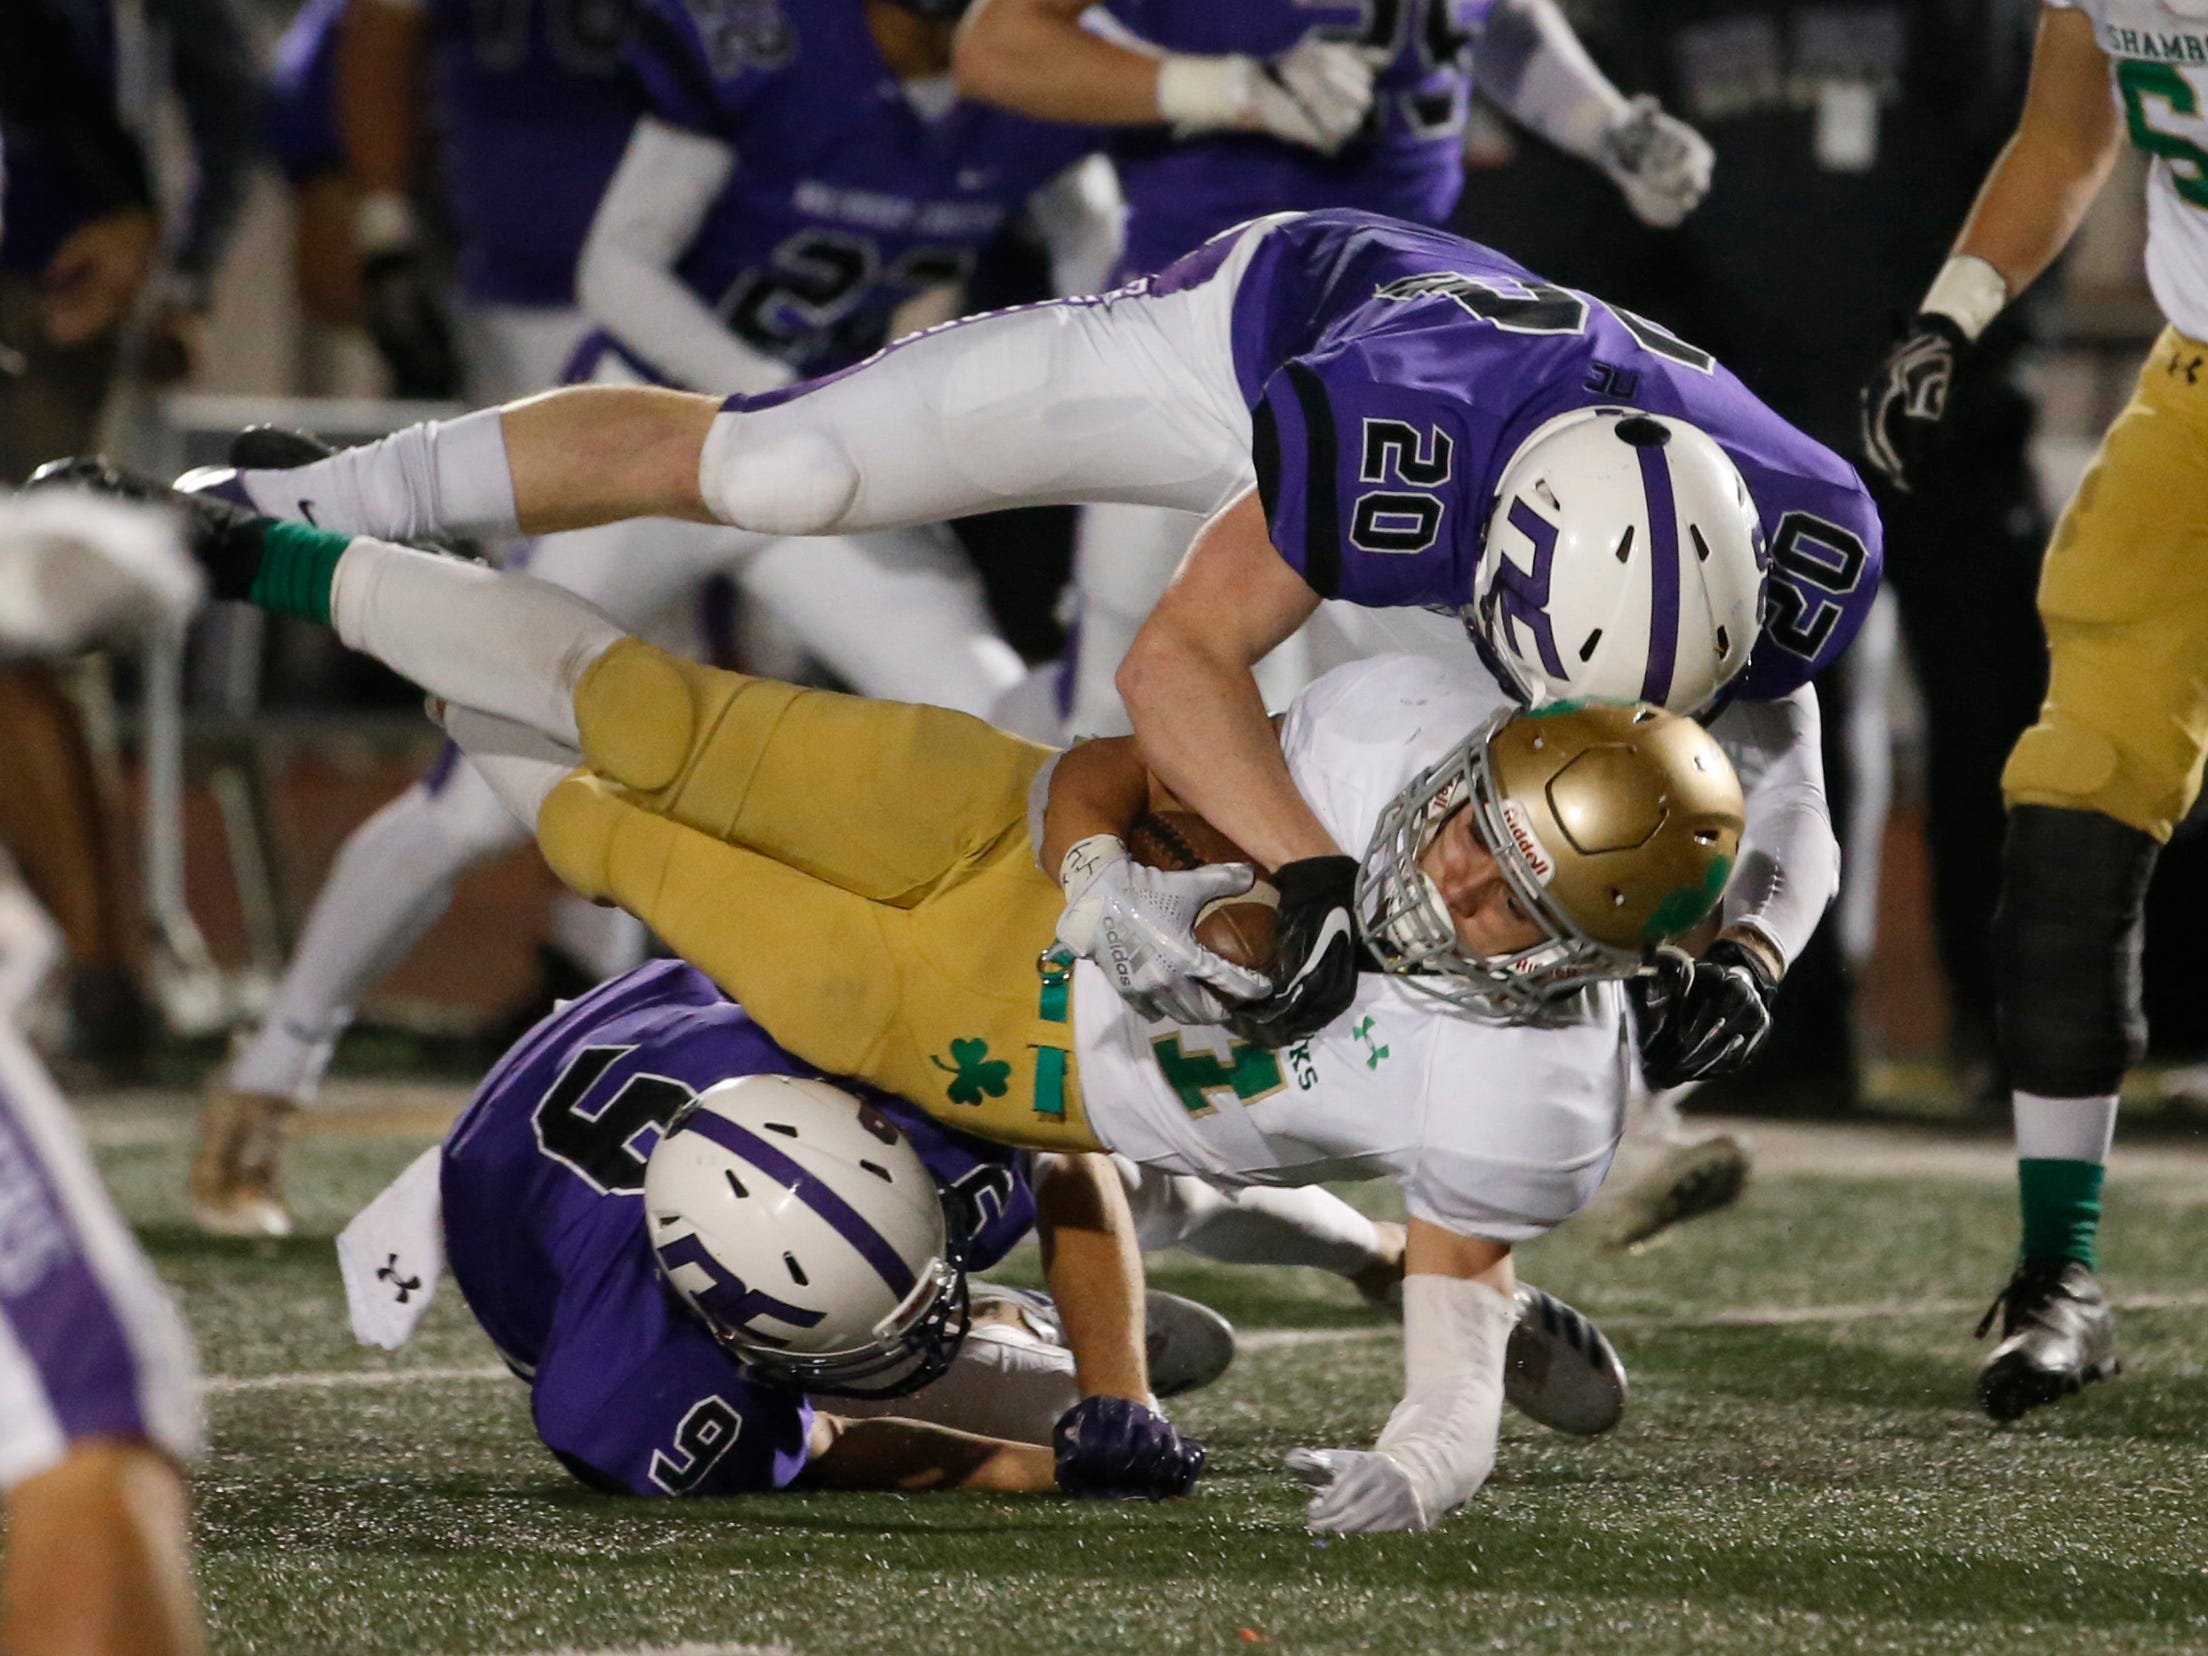 Northwest Christian's Brady Wijbrandts (9) and Josh Heidel (20) tackle Puma Catholic's Ean Chavez (21) during the 3A state championship game Nov. 24 at Campo Verde High School.